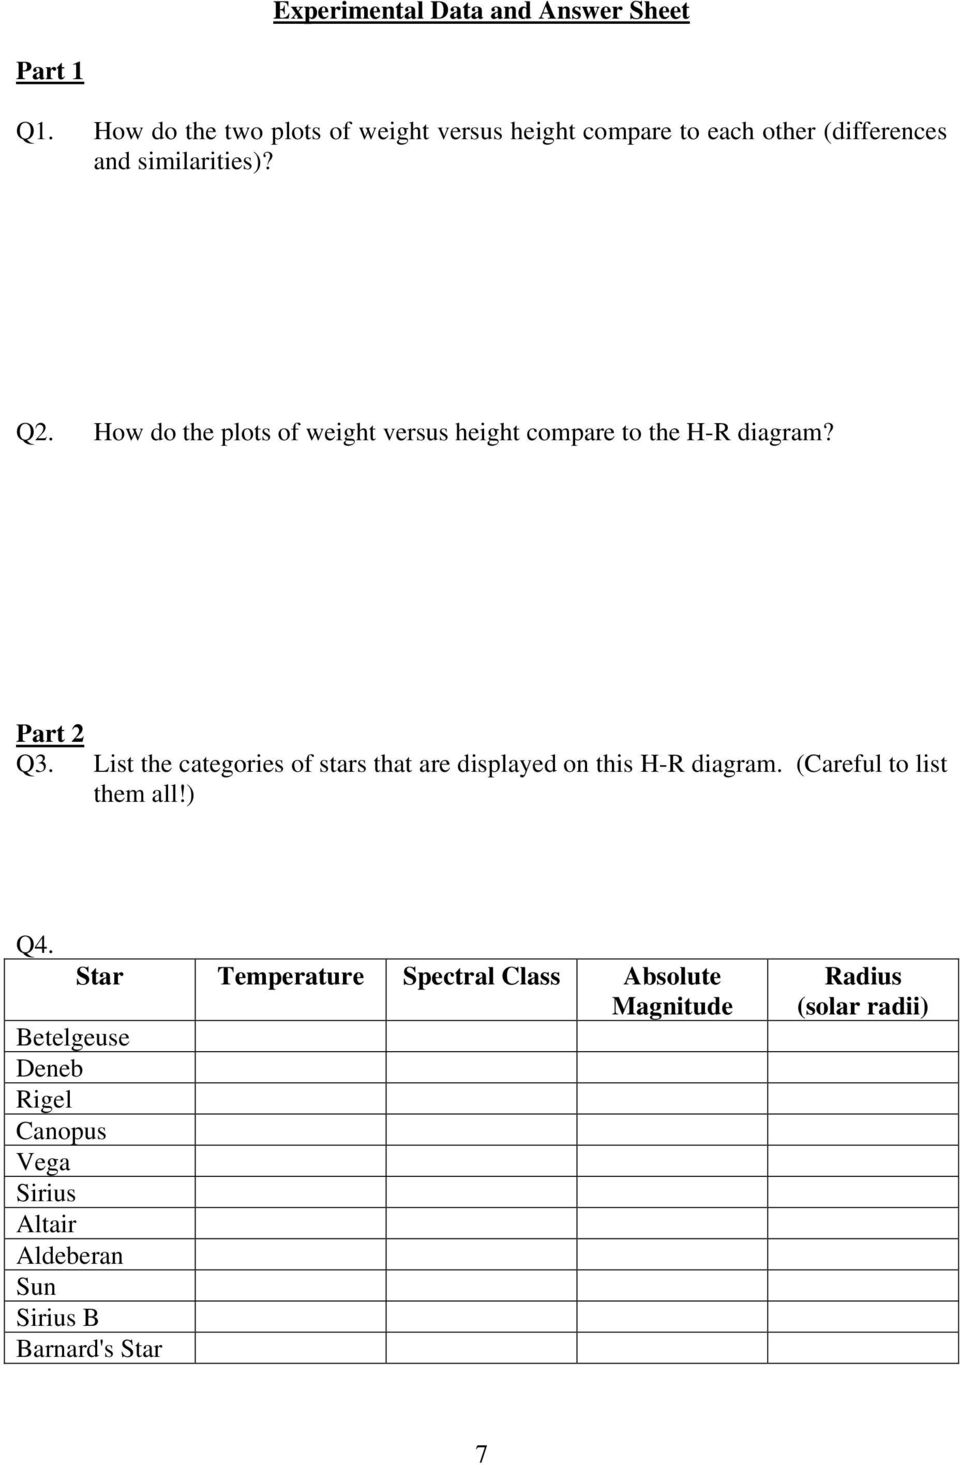 medium resolution of how do the plots of weight versus height compare to the h r diagram part 2